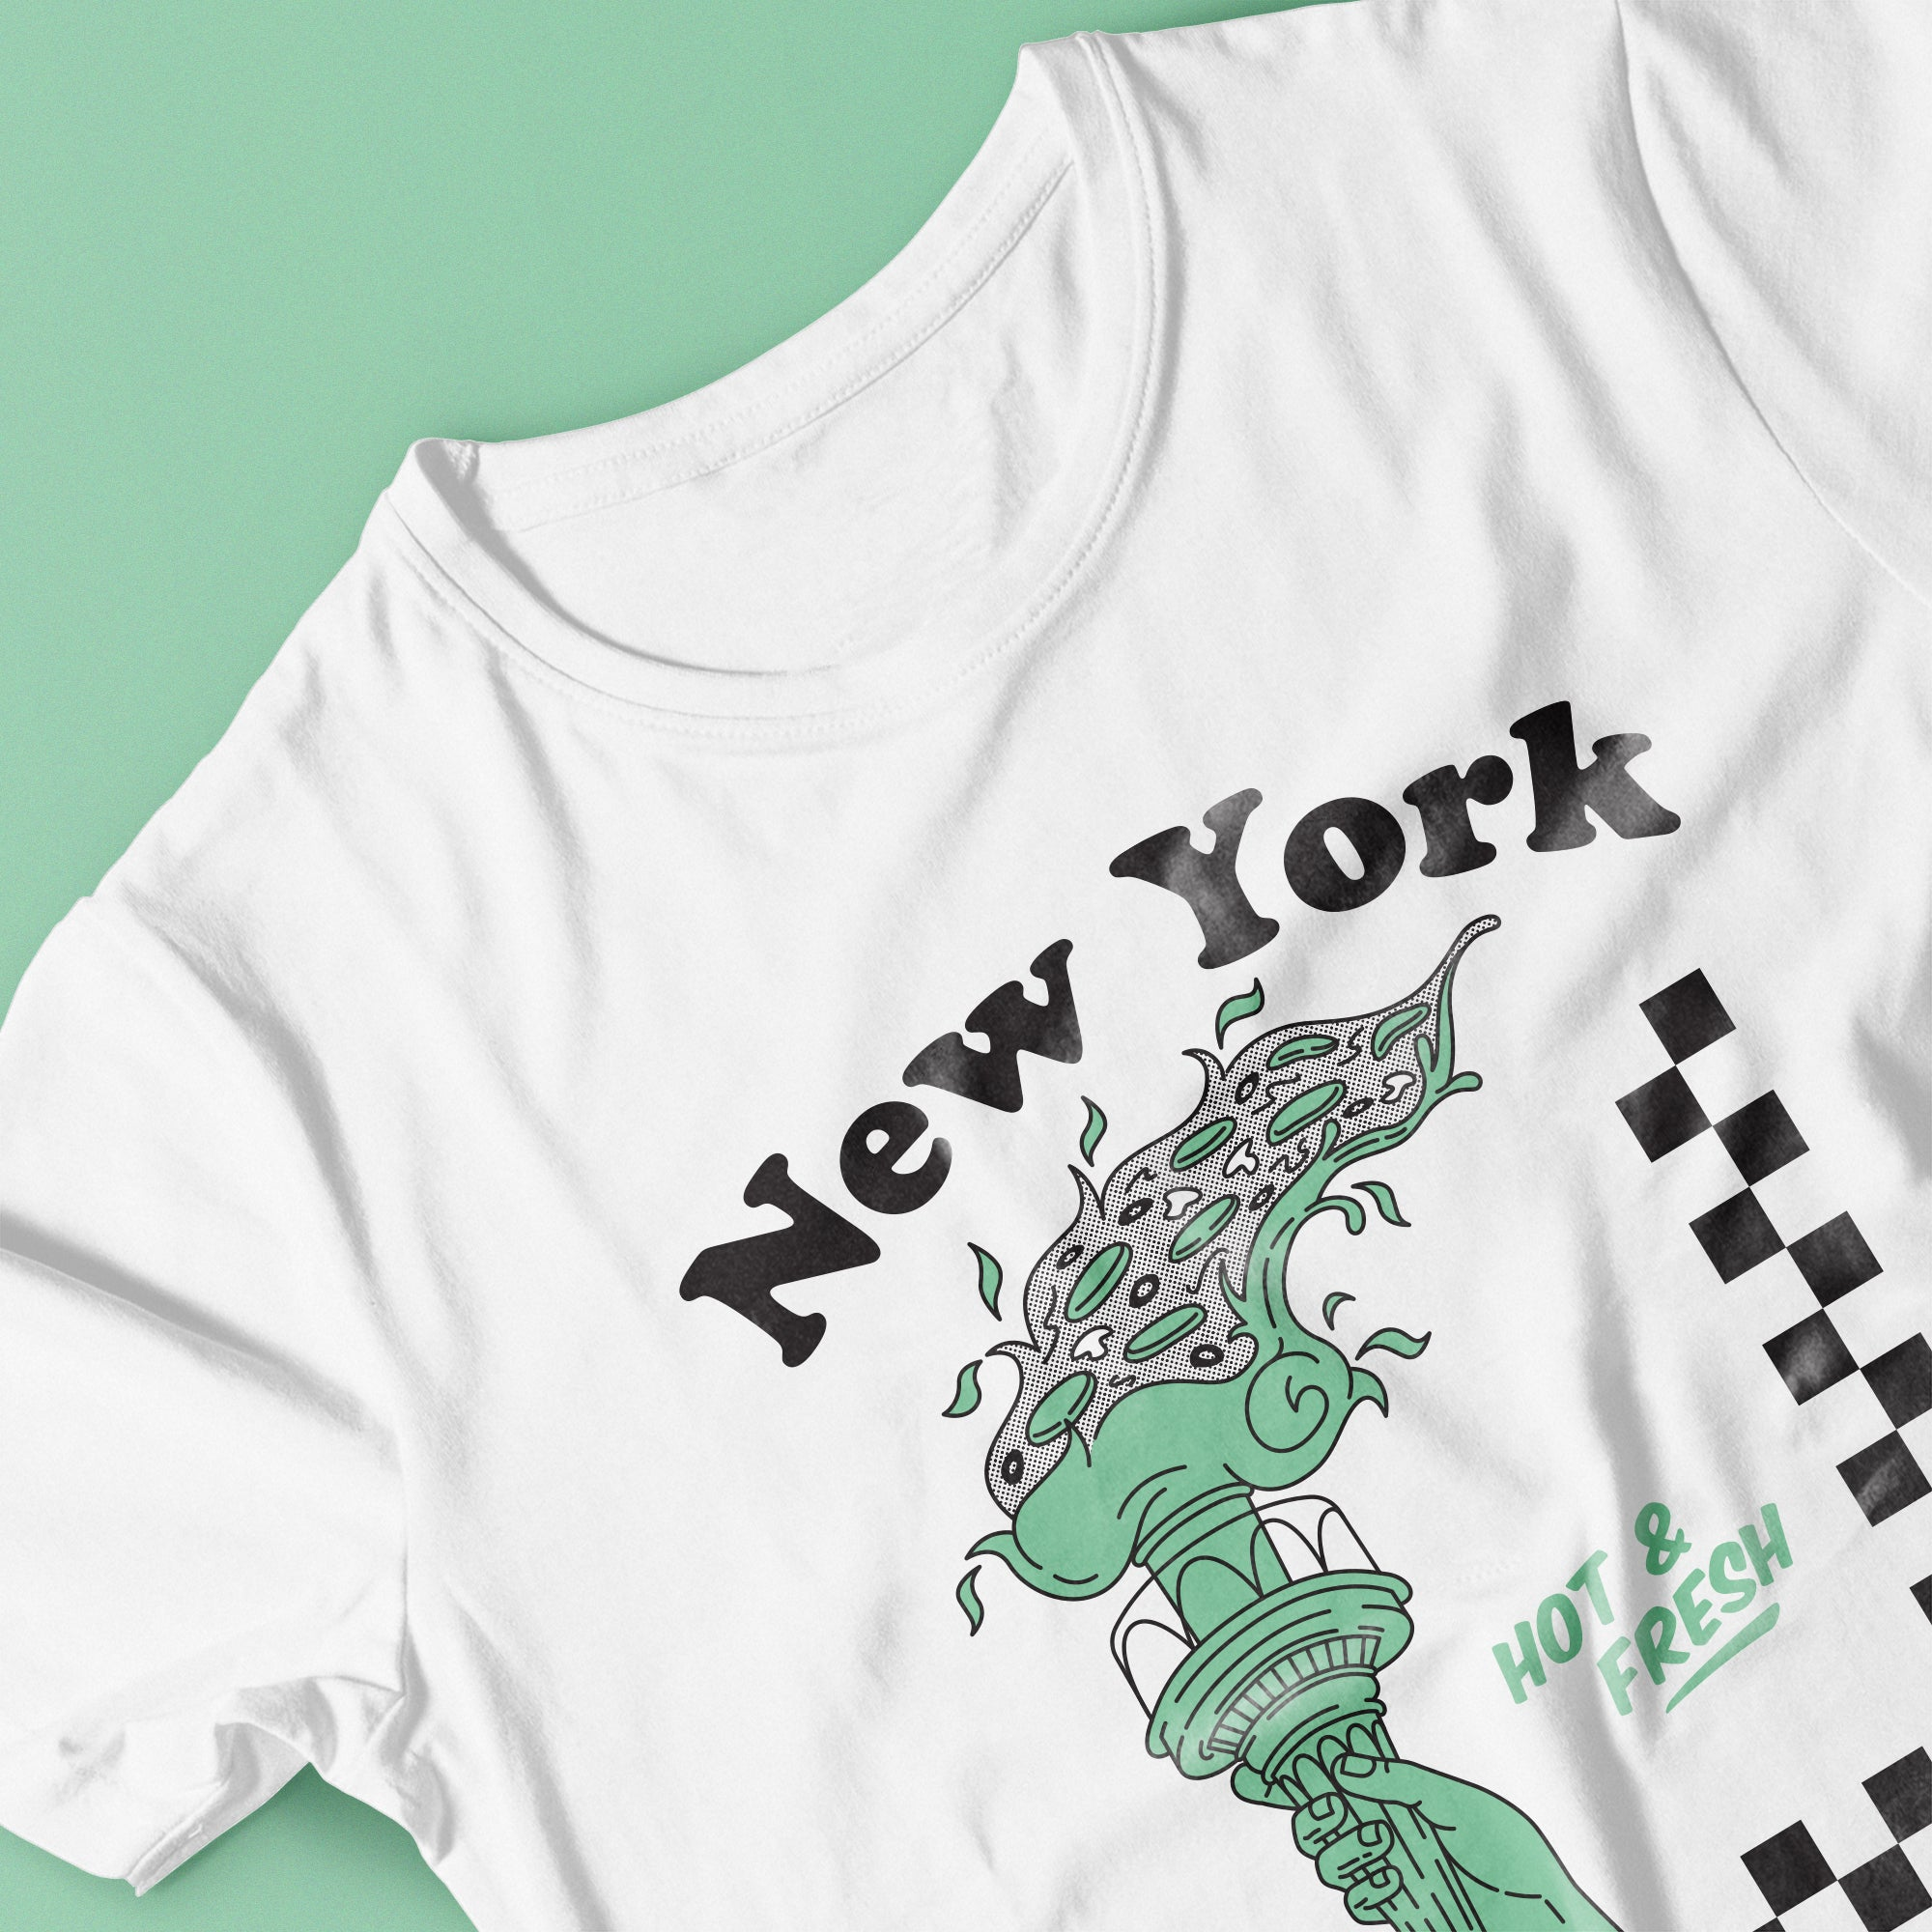 New York Hot and Fresh T-shirt by Lulab